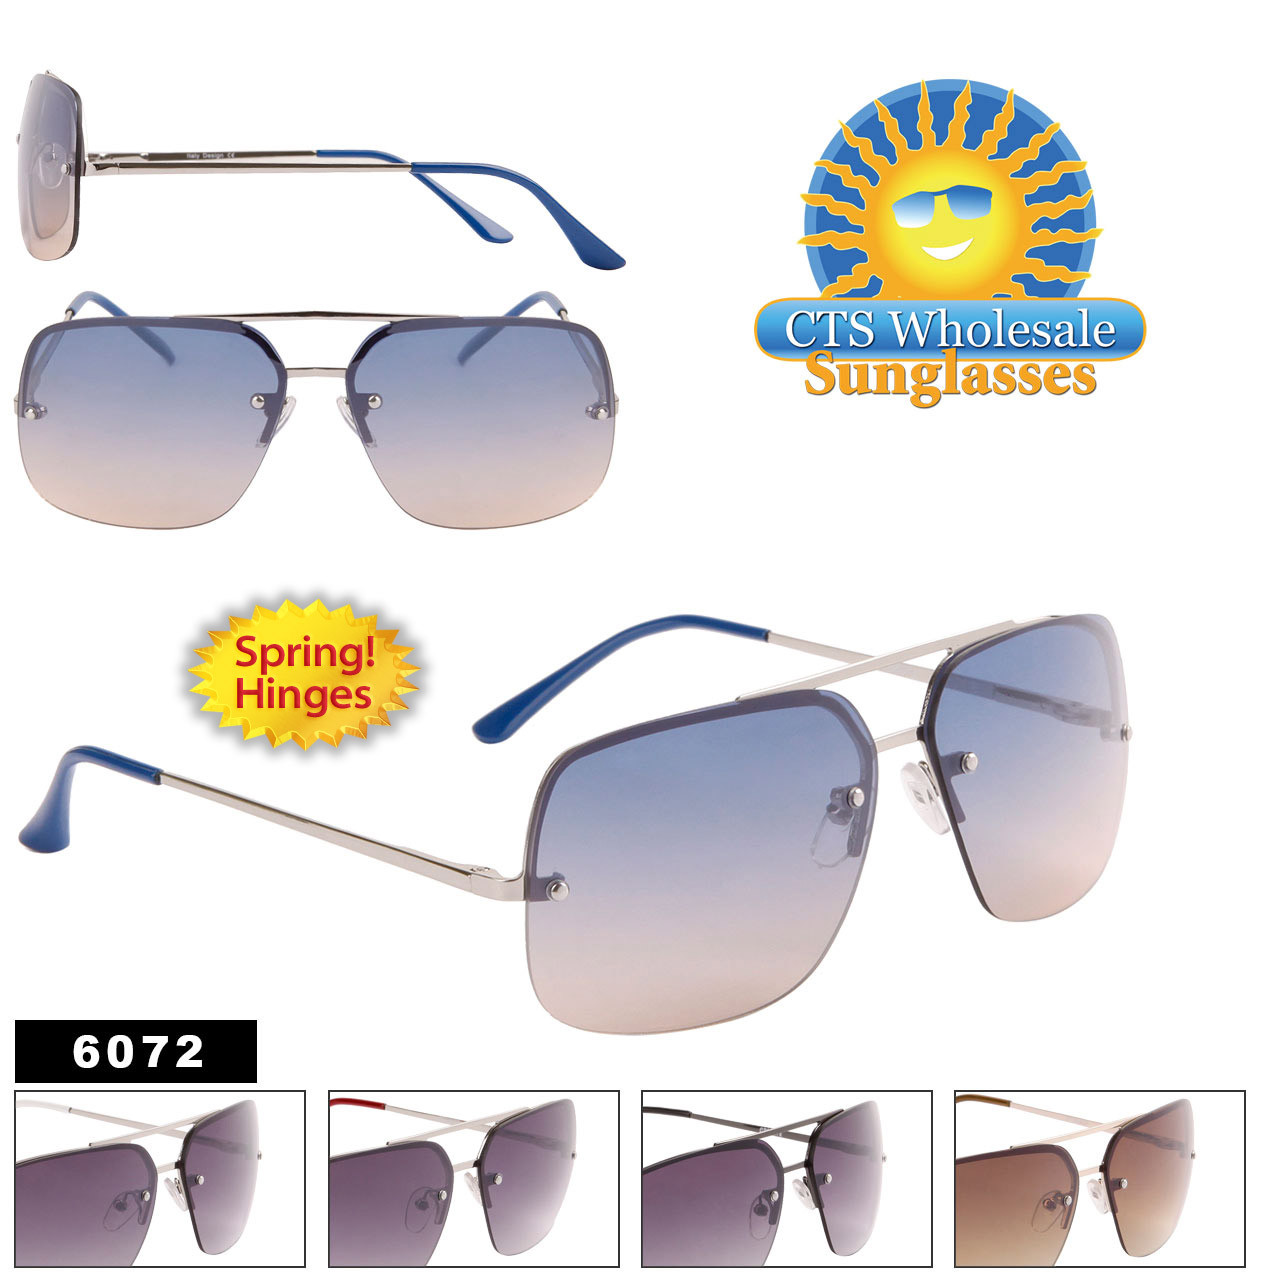 Mens Wholesale Sunglasses - Style #6072 Spring Hinge